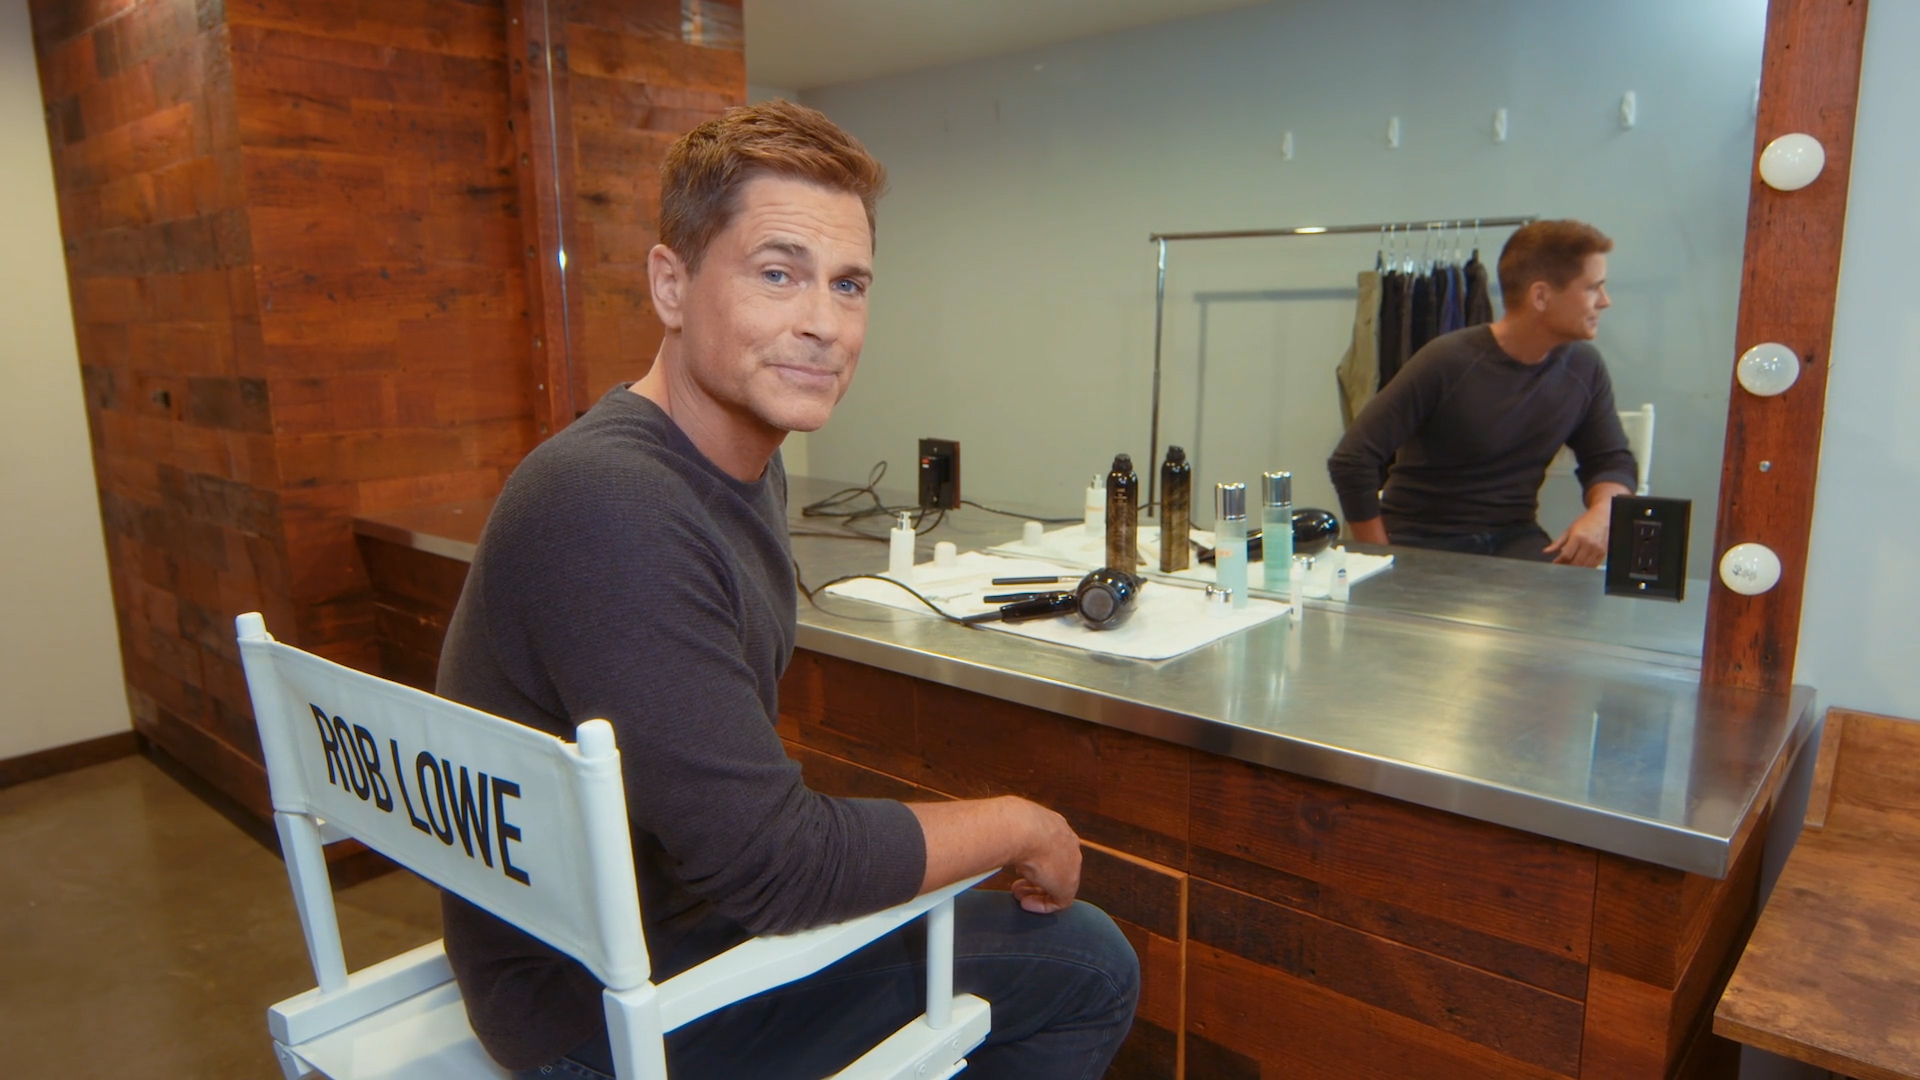 20 Questions with Rob Lowe